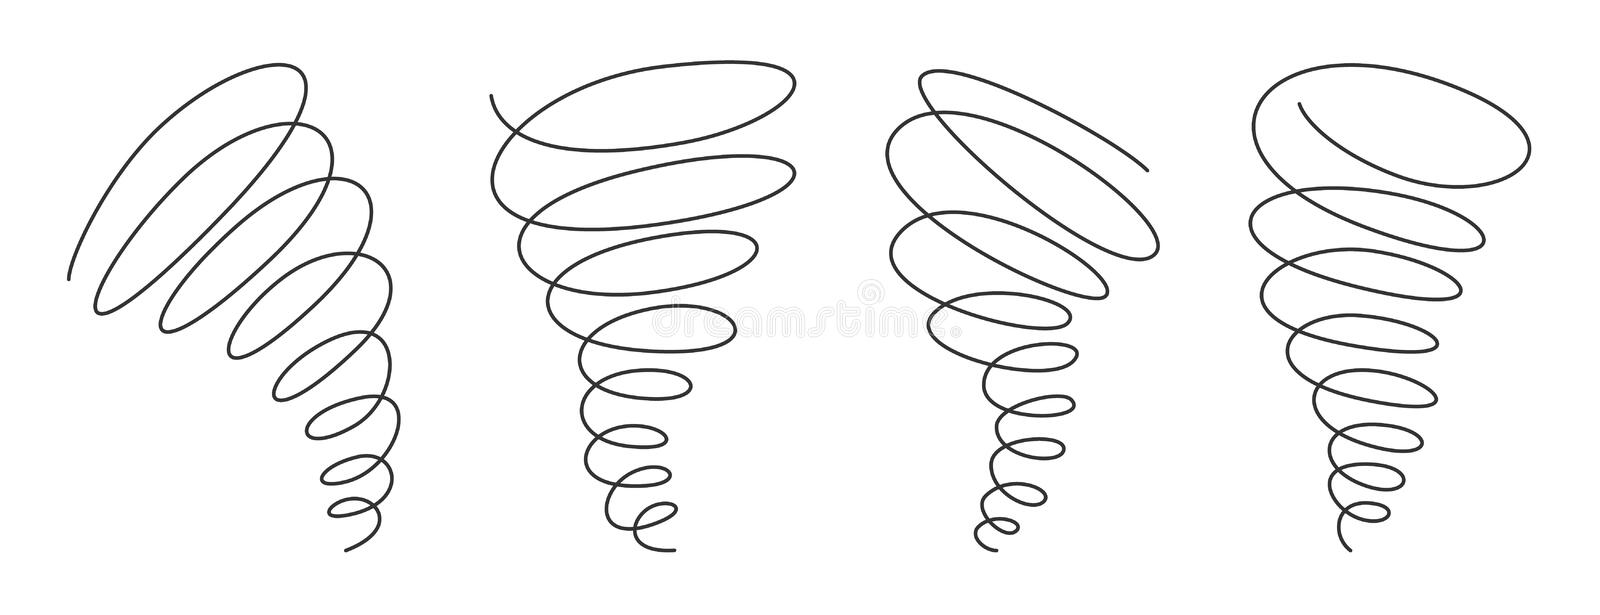 Tornado swirl continuous line with editable stroke isolated on white background - vector illustration set. Tornado swirl continuous line with editable stroke stock illustration